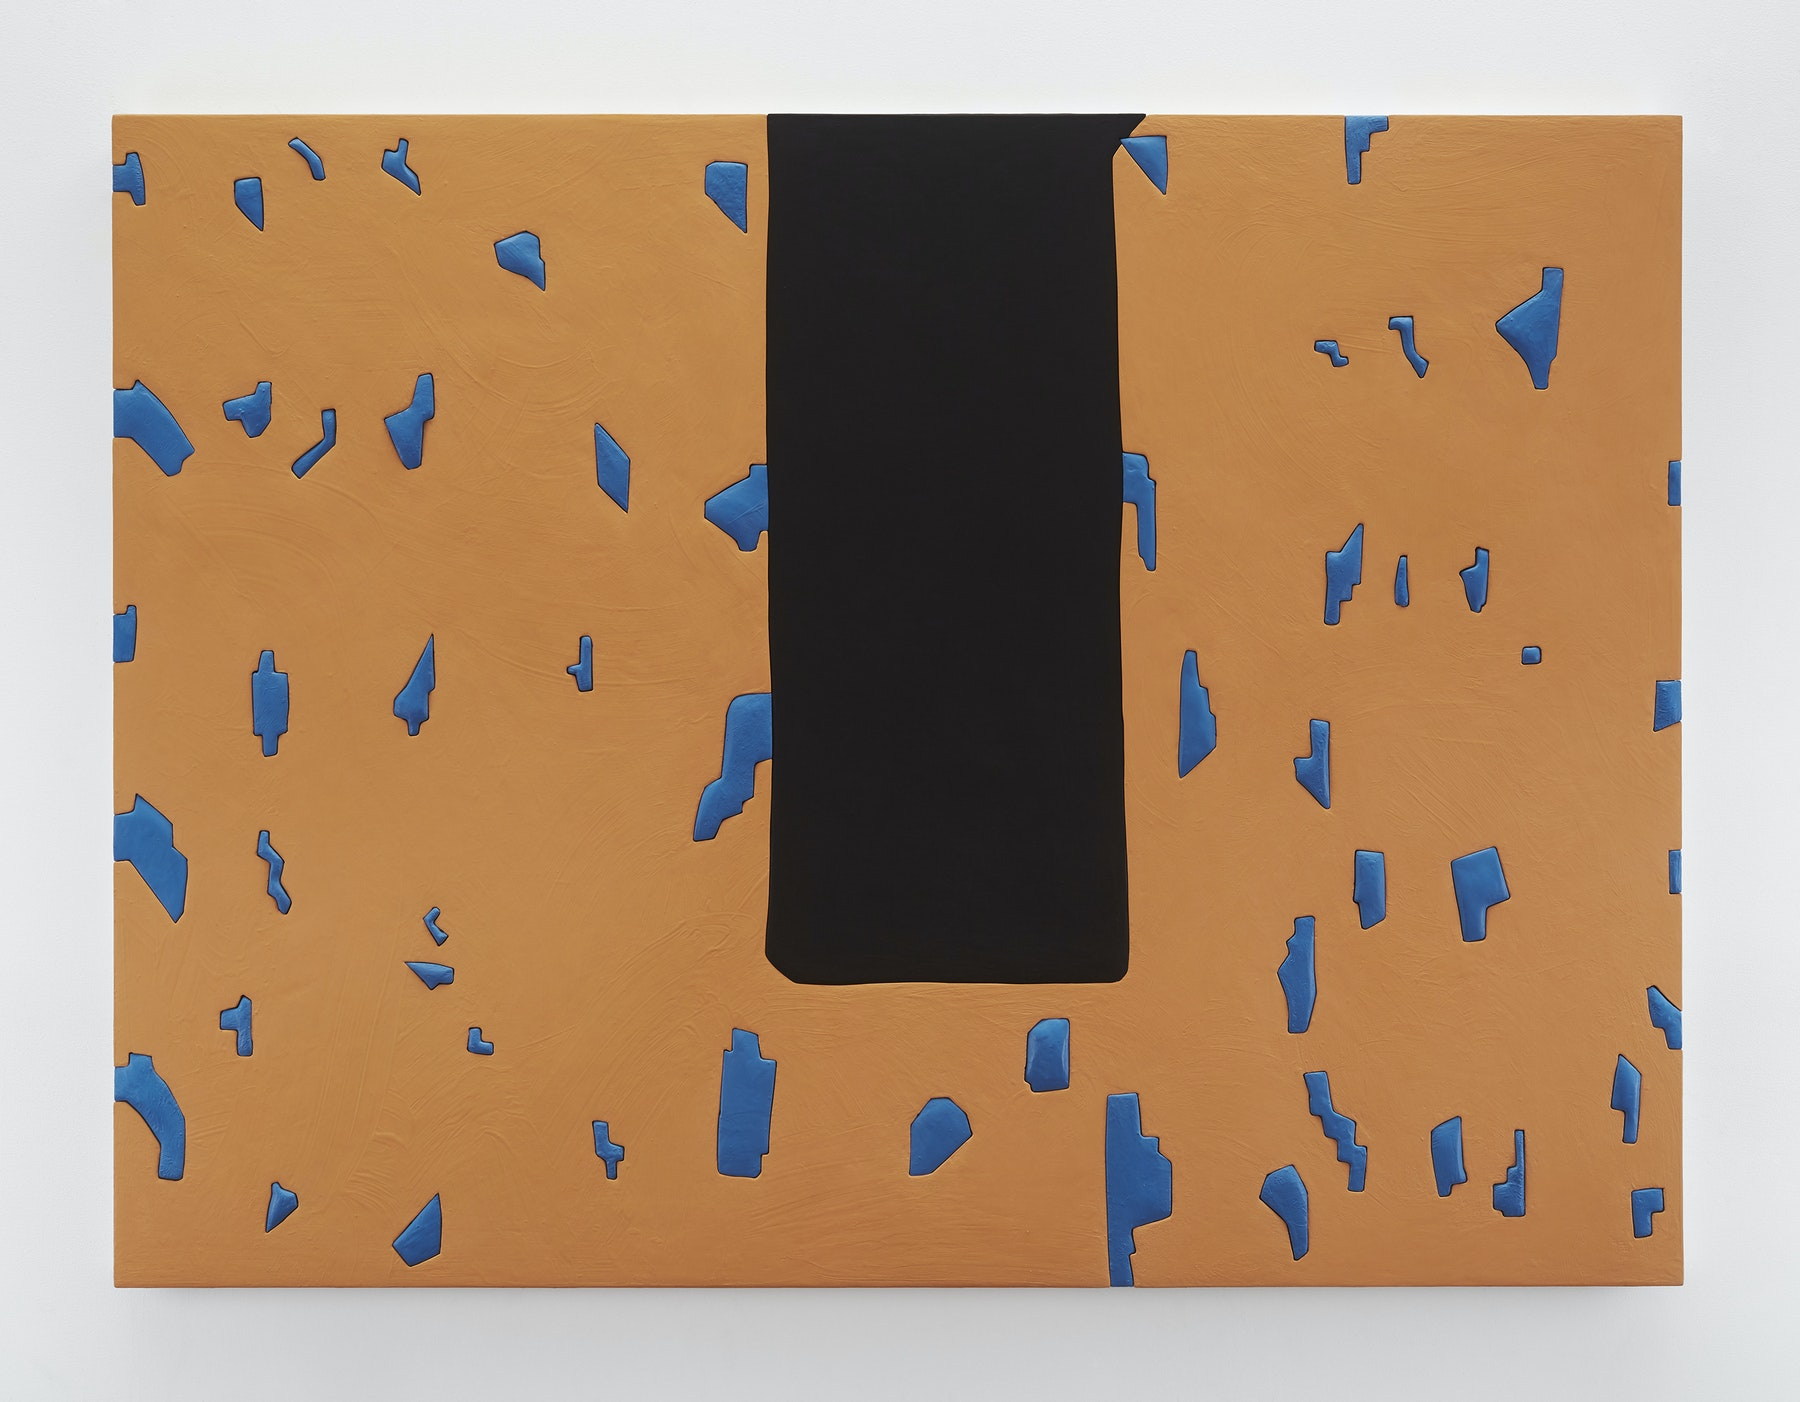 """Sadie Benning """"Untitled 7,"""" 2019 Wood, aqua resin, casein, and acrylic gouache 53 x 71"""" [HxW] (134.62 x 180.34 cm) Inventory #BEN861 Courtesy of the artist and Vielmetter Los Angeles Photocredit: Chris Austin"""